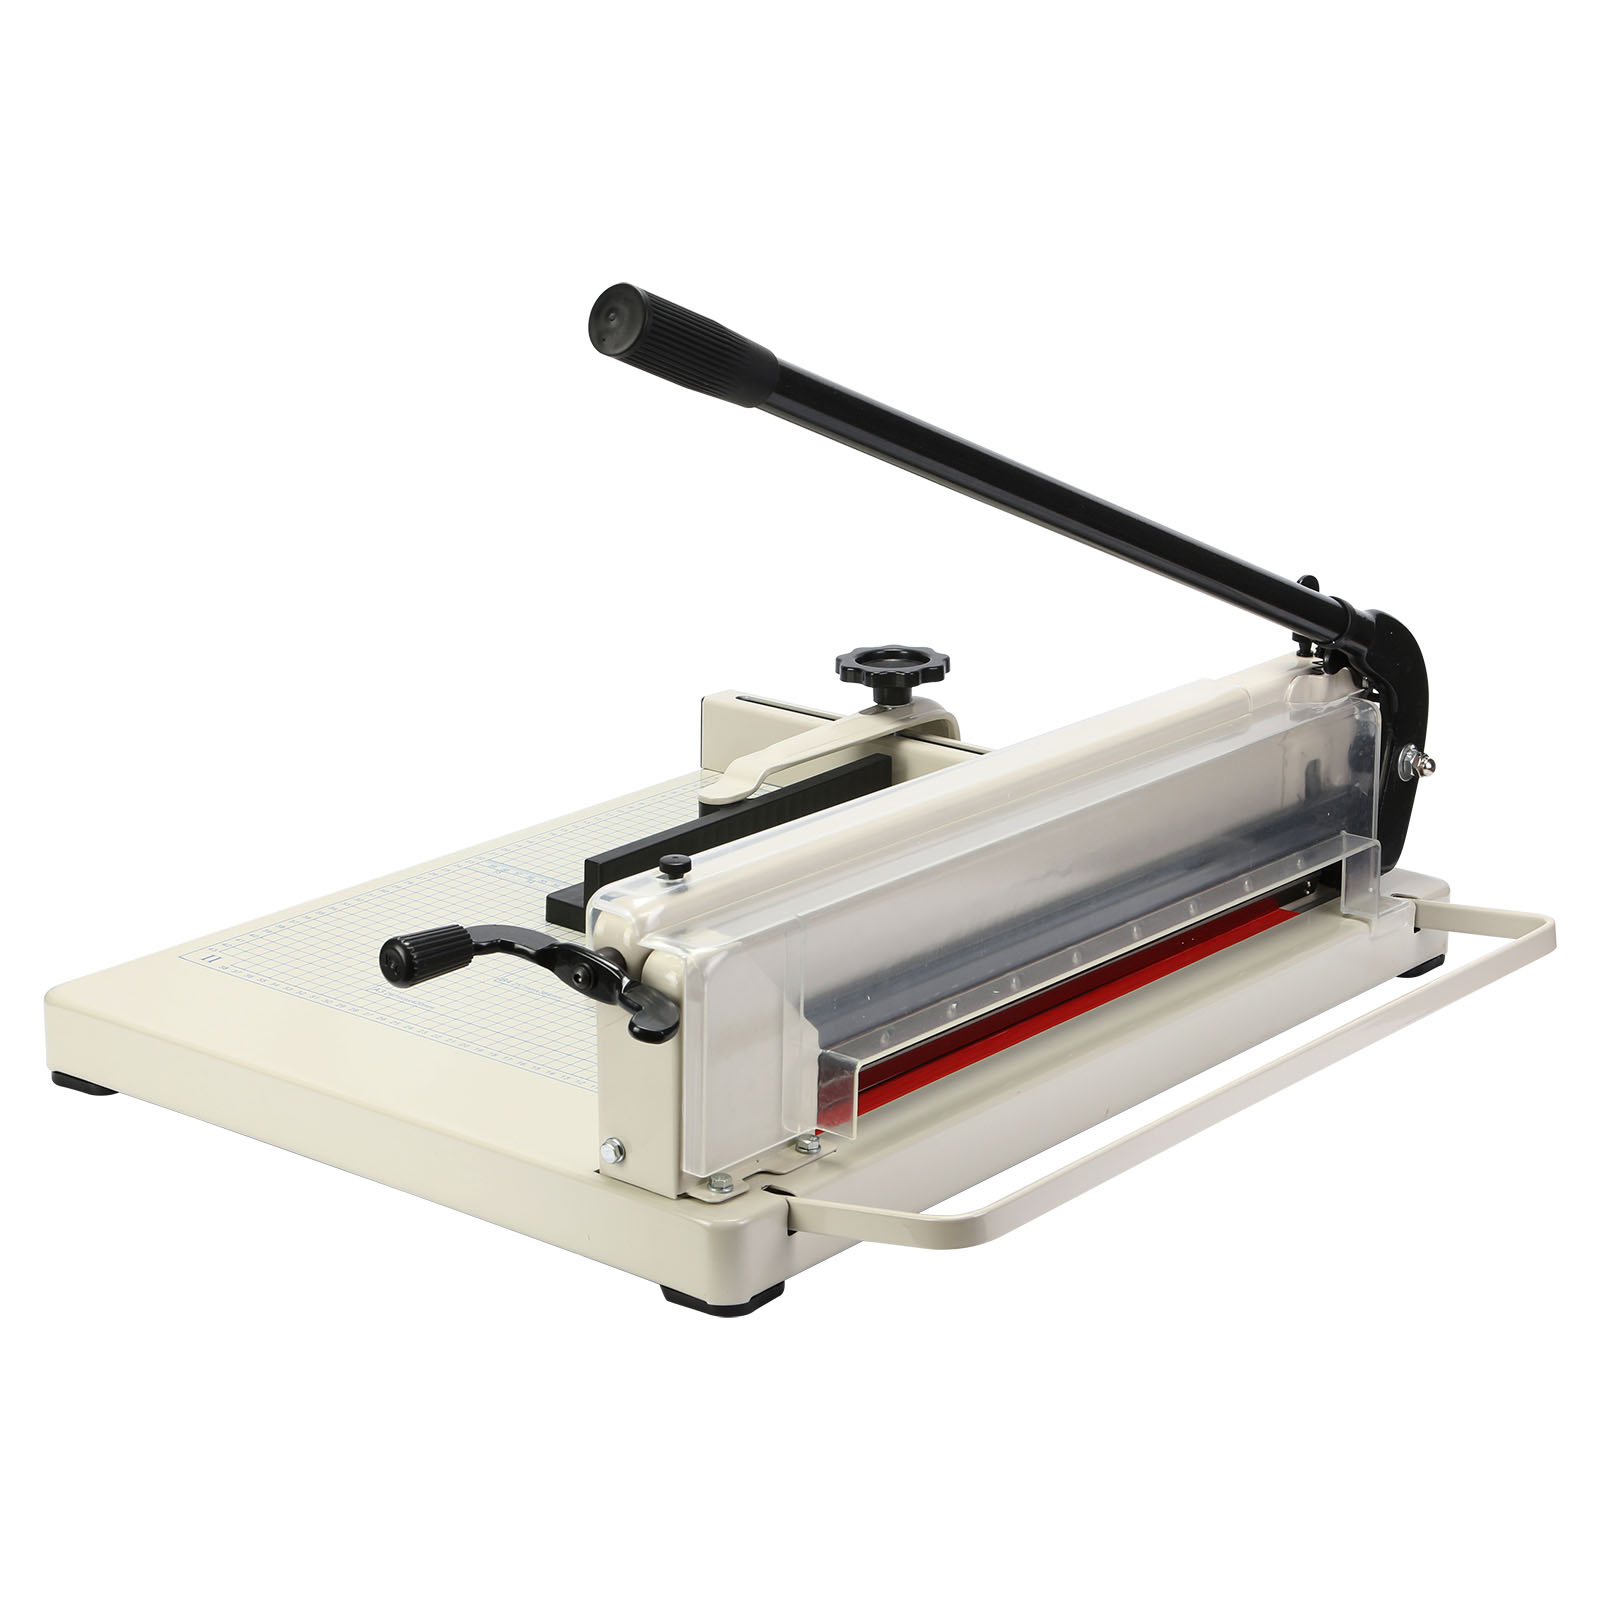 commercial paper cutter research Professionally cut and trim your foam board mounted, prints, signs, posters and more binding 101 has the laminate, foam and paper cutters to do the job.